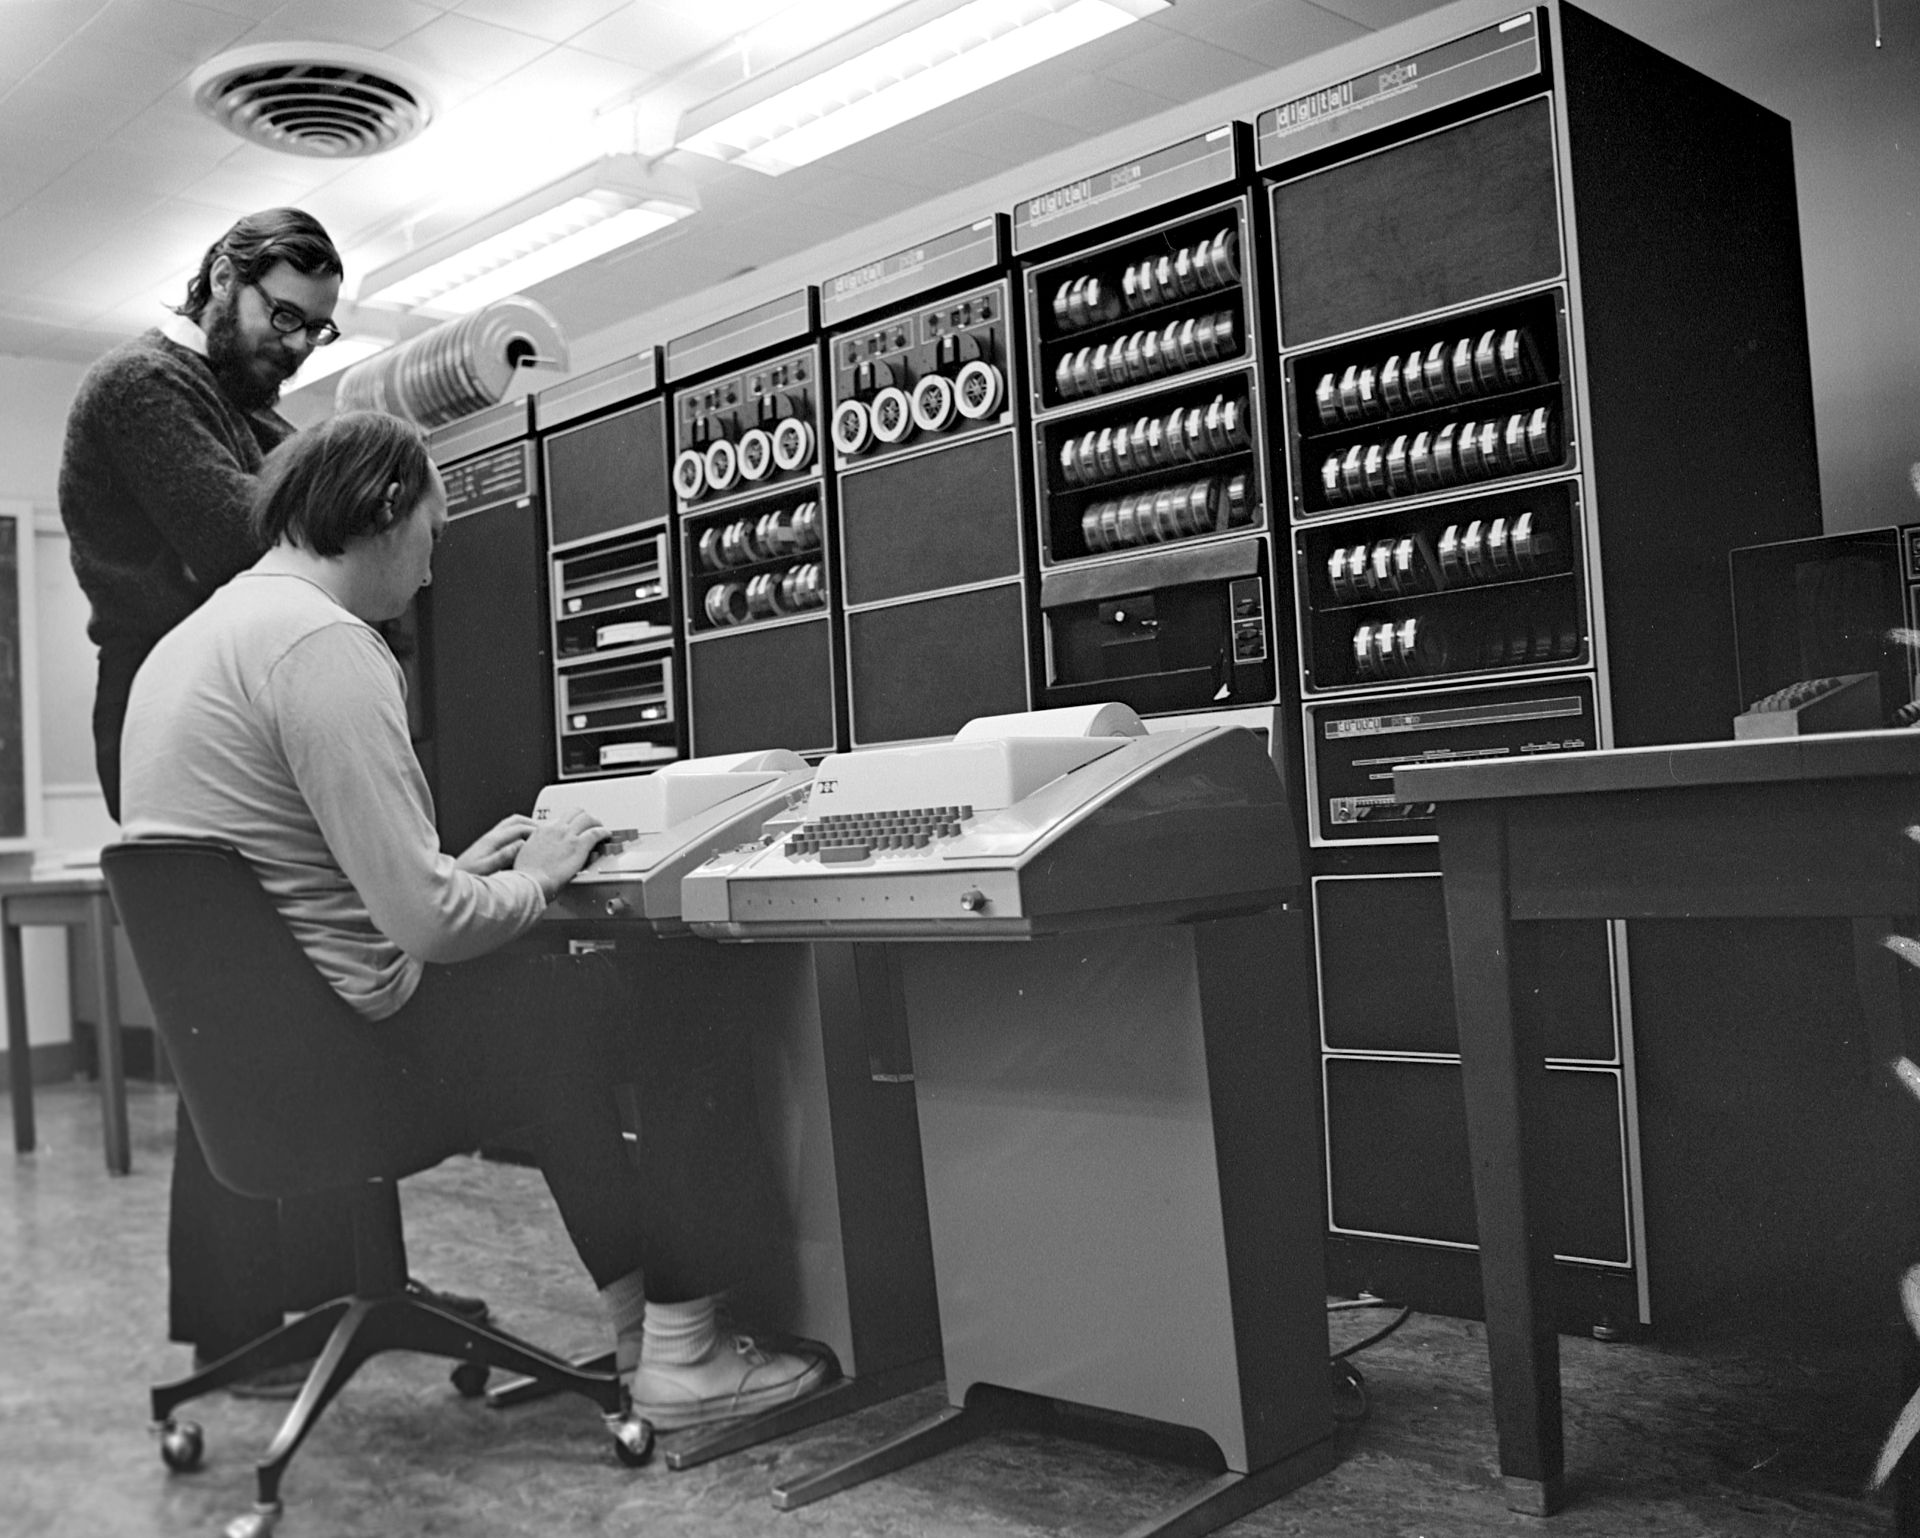 Ken Thompson and Dennis Ritchie, creators of UNIX. CC BY-SA 2.0 from http://en.wikipedia.org/wiki/Unix#/media/File:Ken_Thompson_(sitting)_and_Dennis_Ritchie_at_PDP-11_(2876612463).jpg